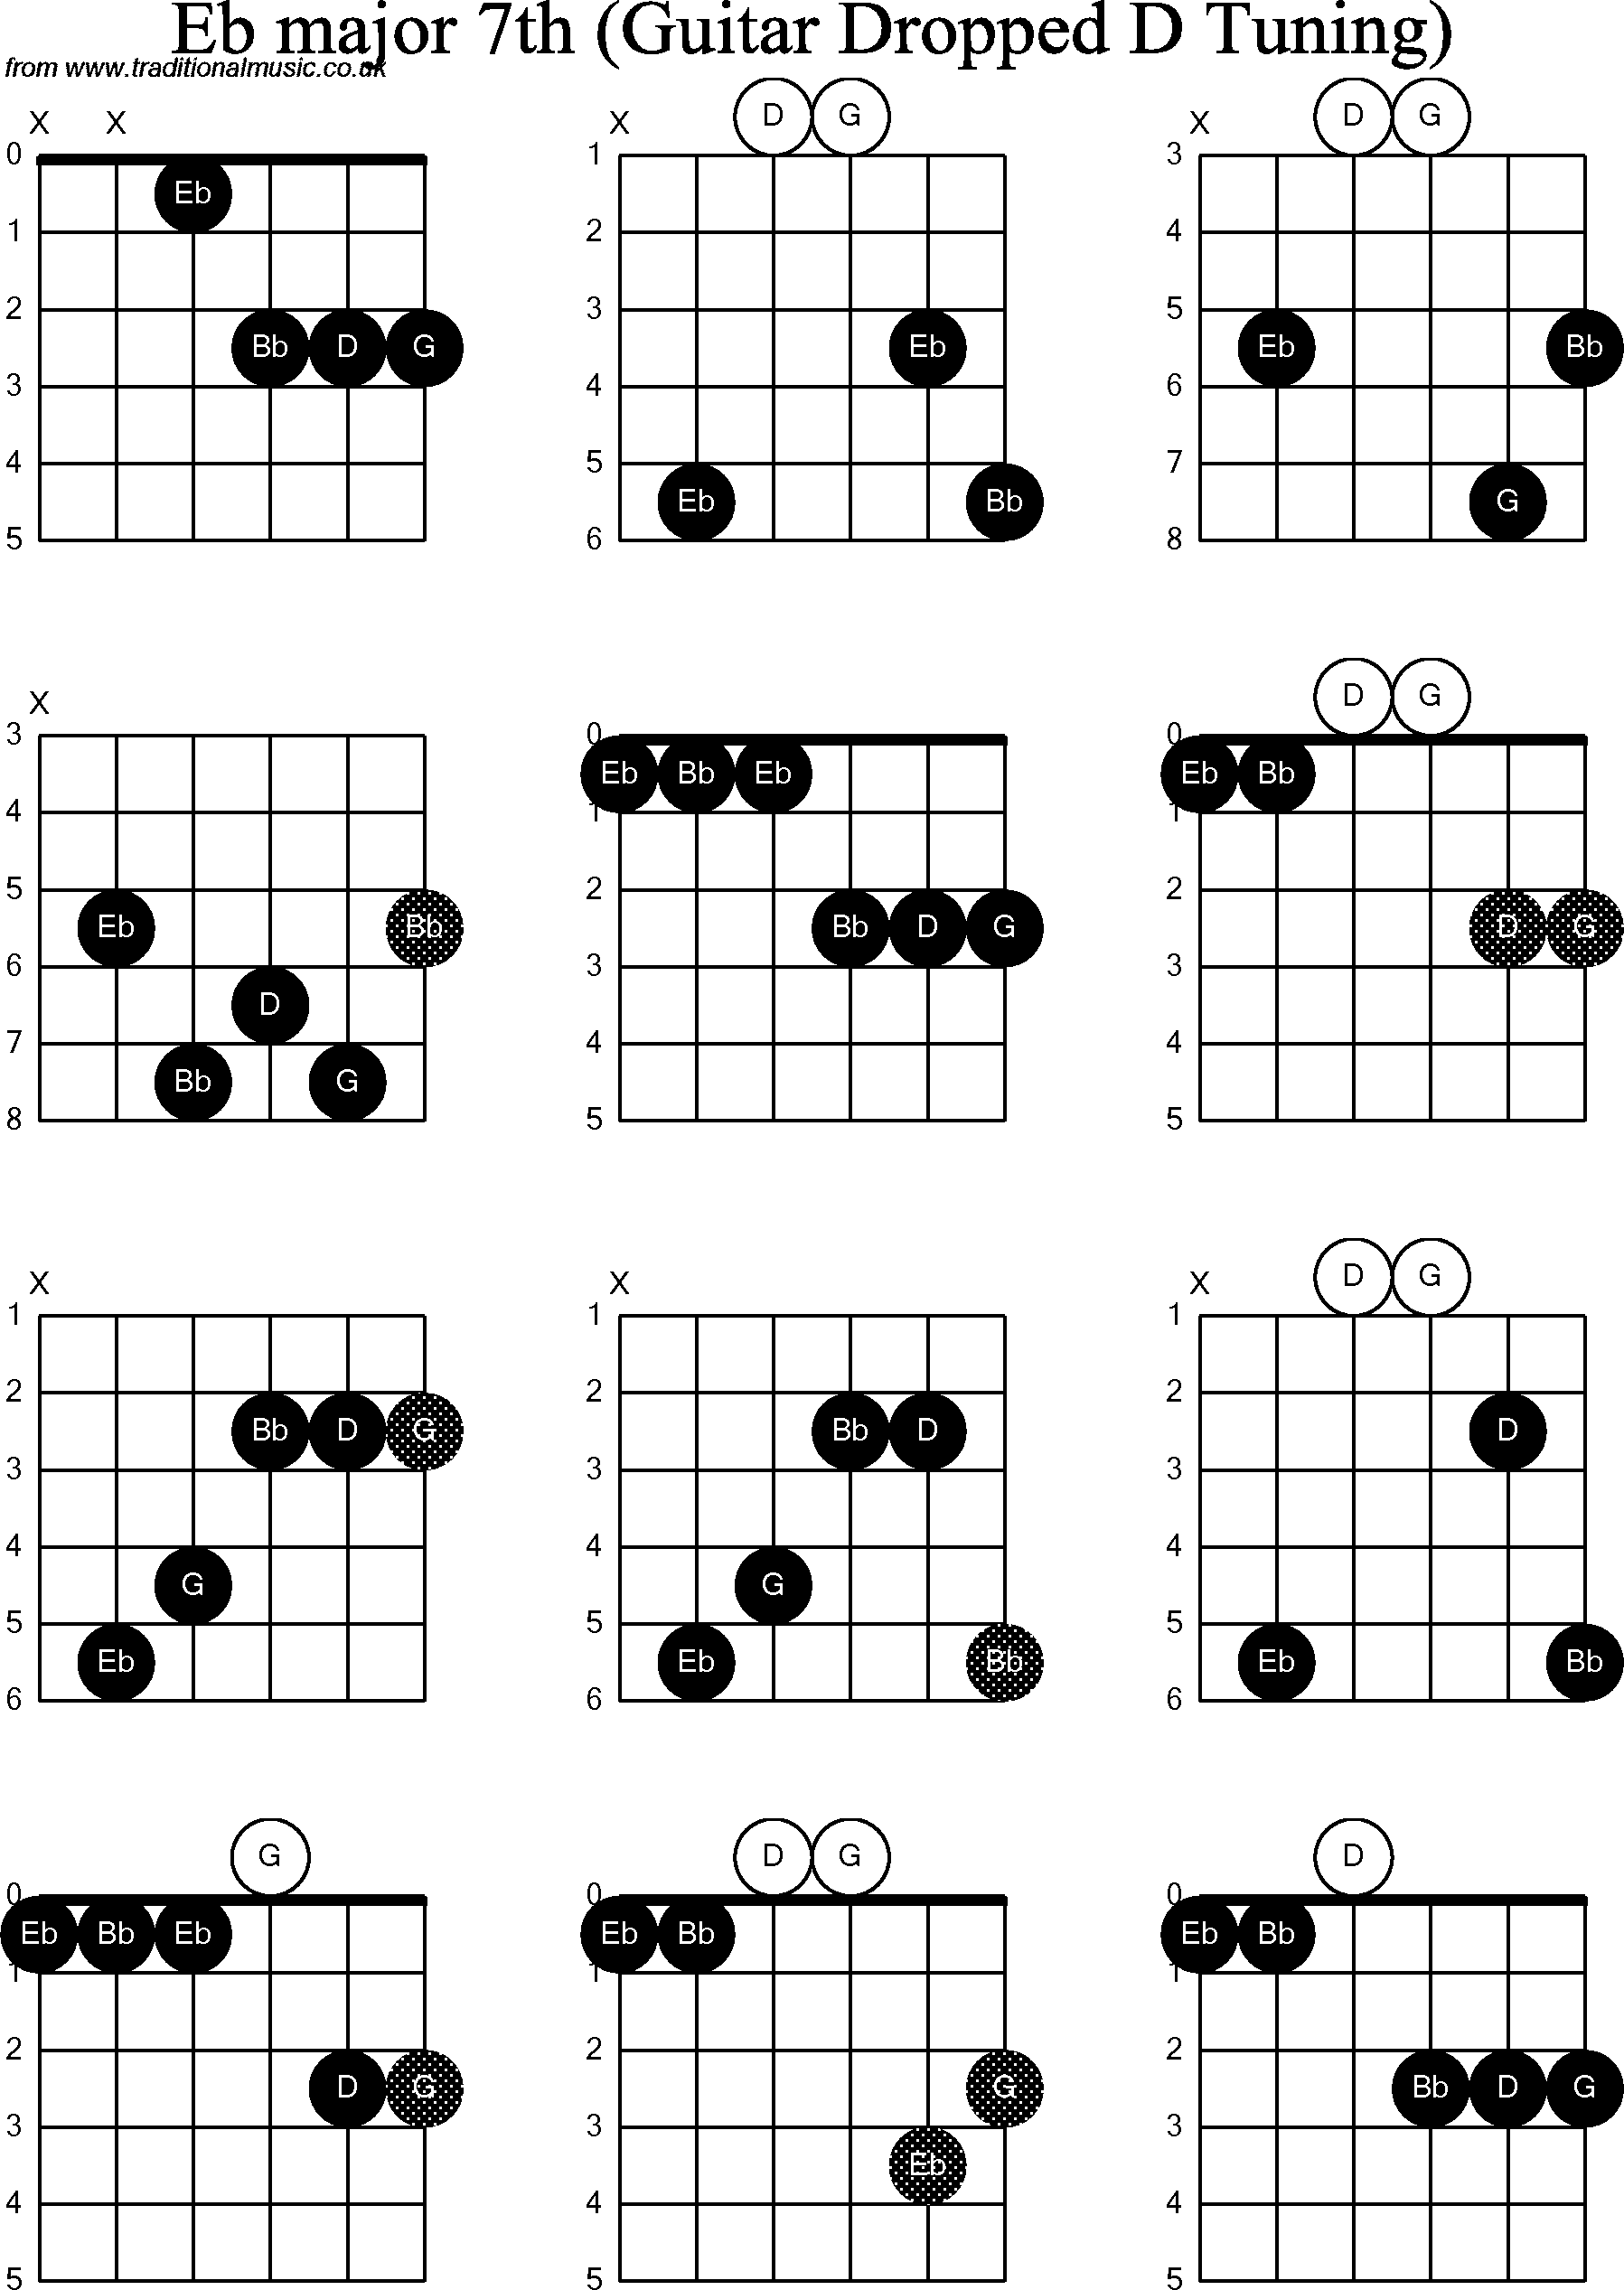 Chord diagrams for Dropped D Guitar(DADGBE), Eb Major7th